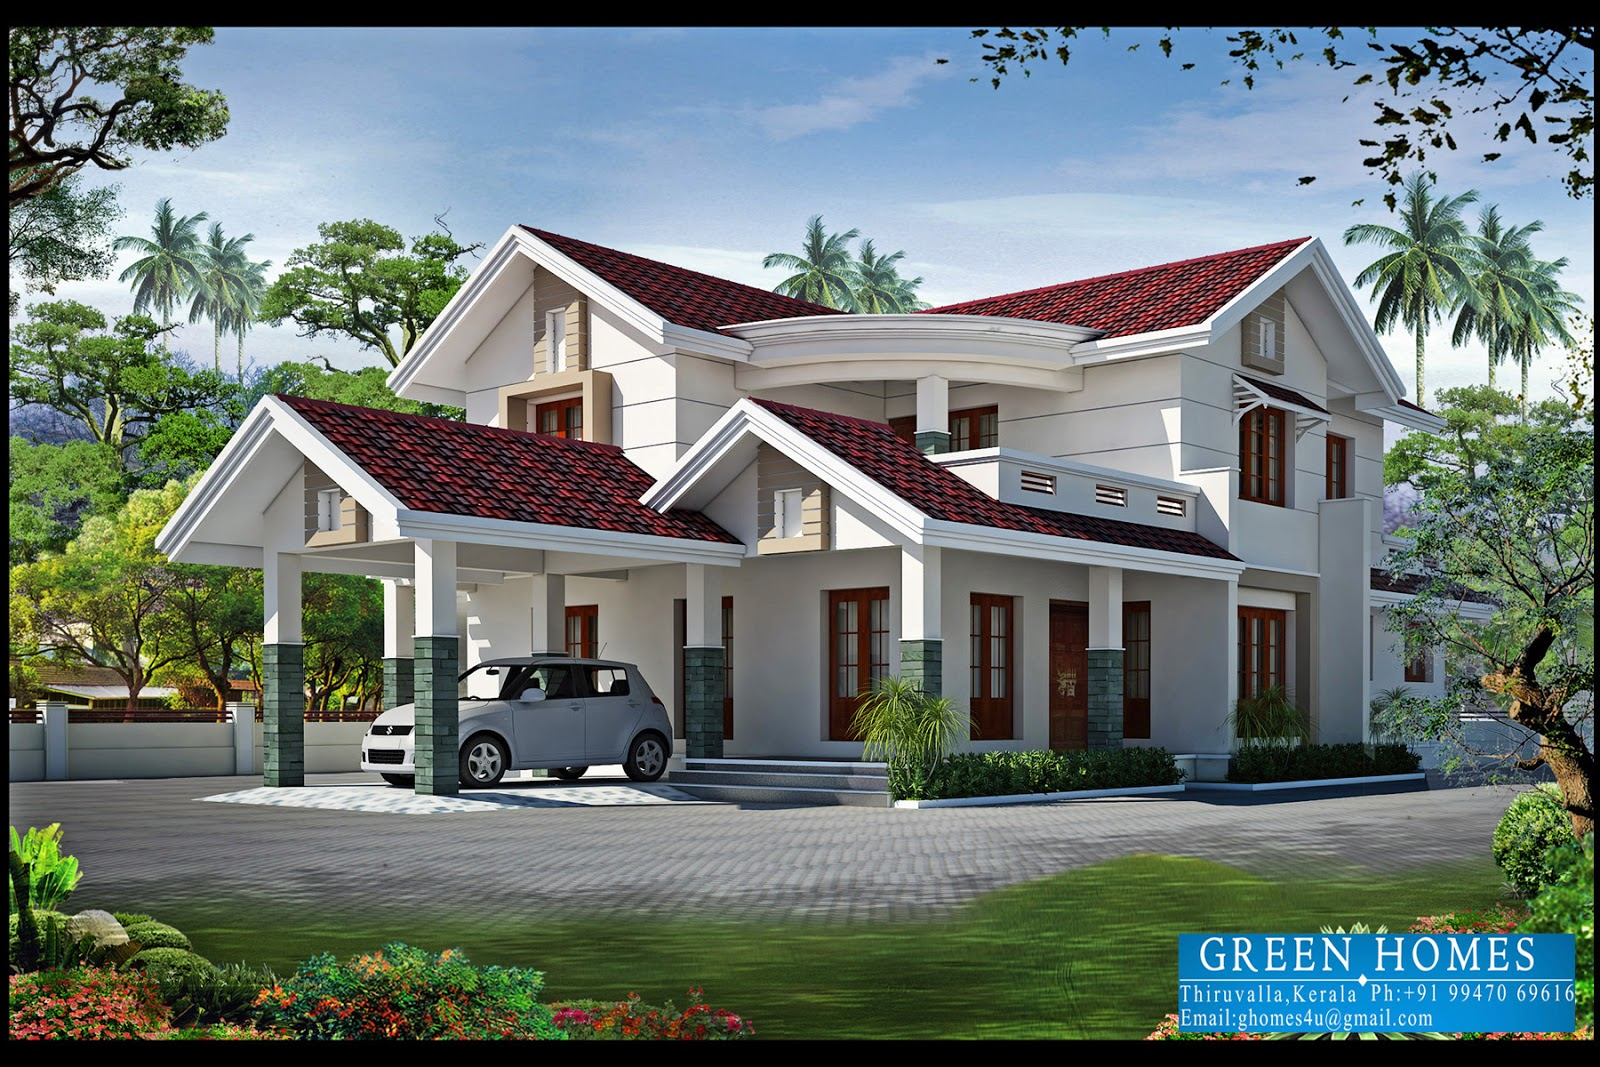 Green homes 4bhk kerala home design 2550 for Home architecture design kerala